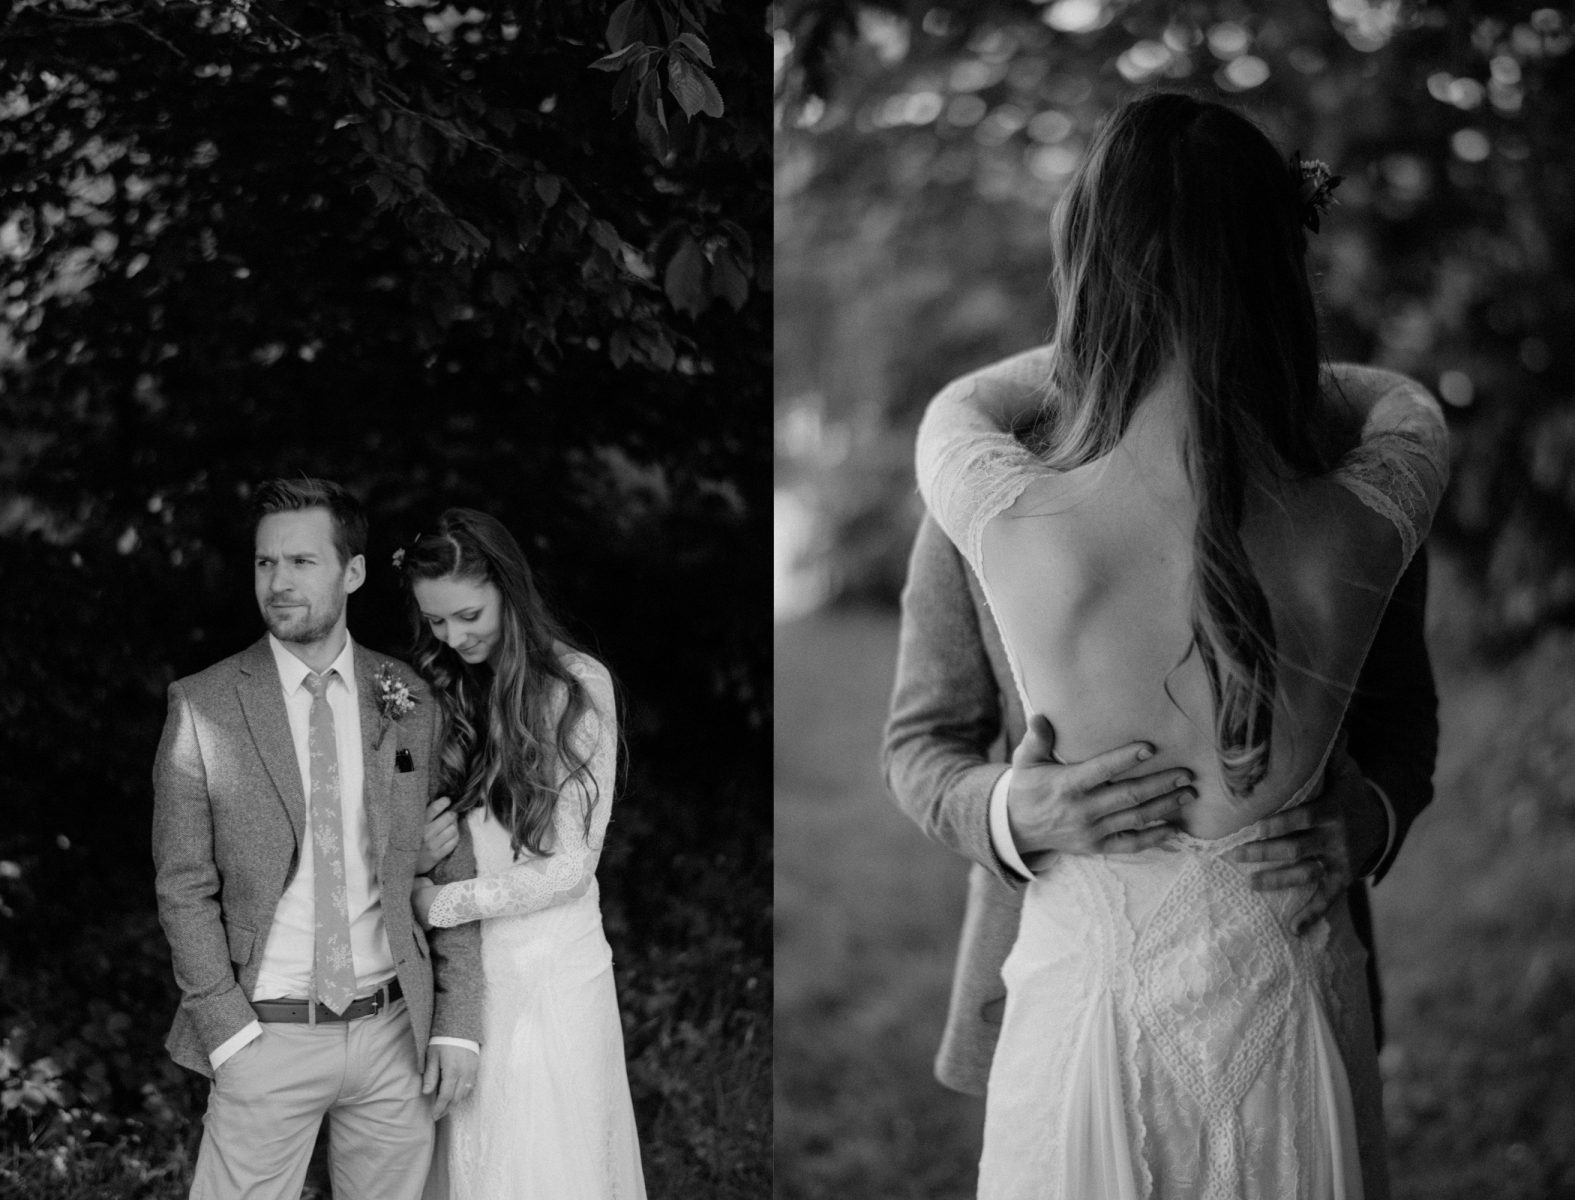 Finnebrogue Woods Wedding chris copeland wedding photographer